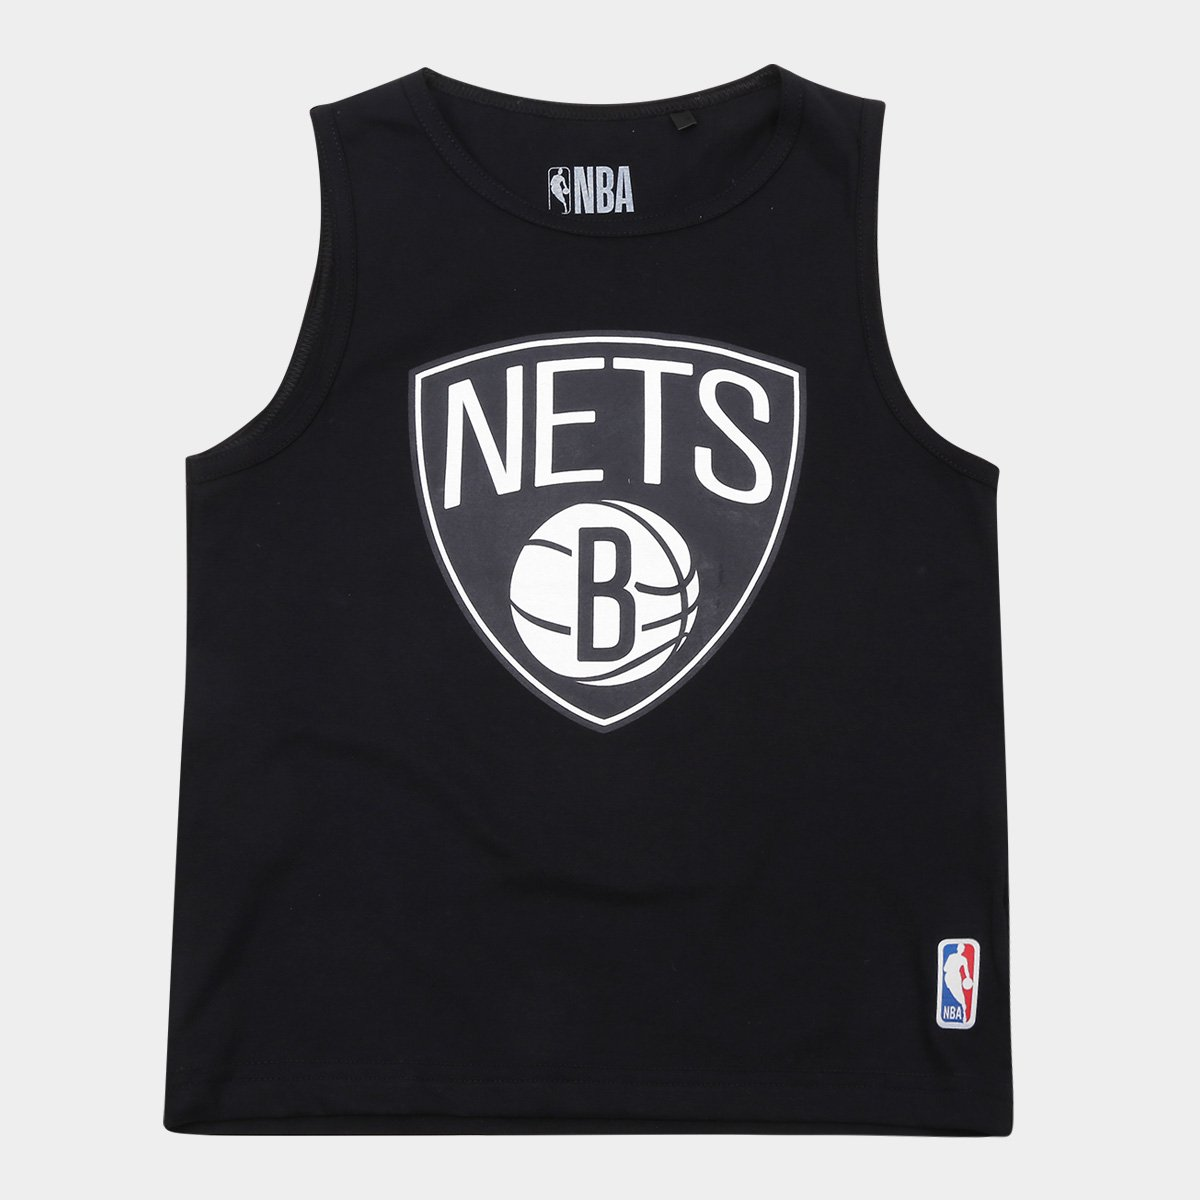 761cf197a Regata NBA Infantil Mini Brooklyn Nets Masculina